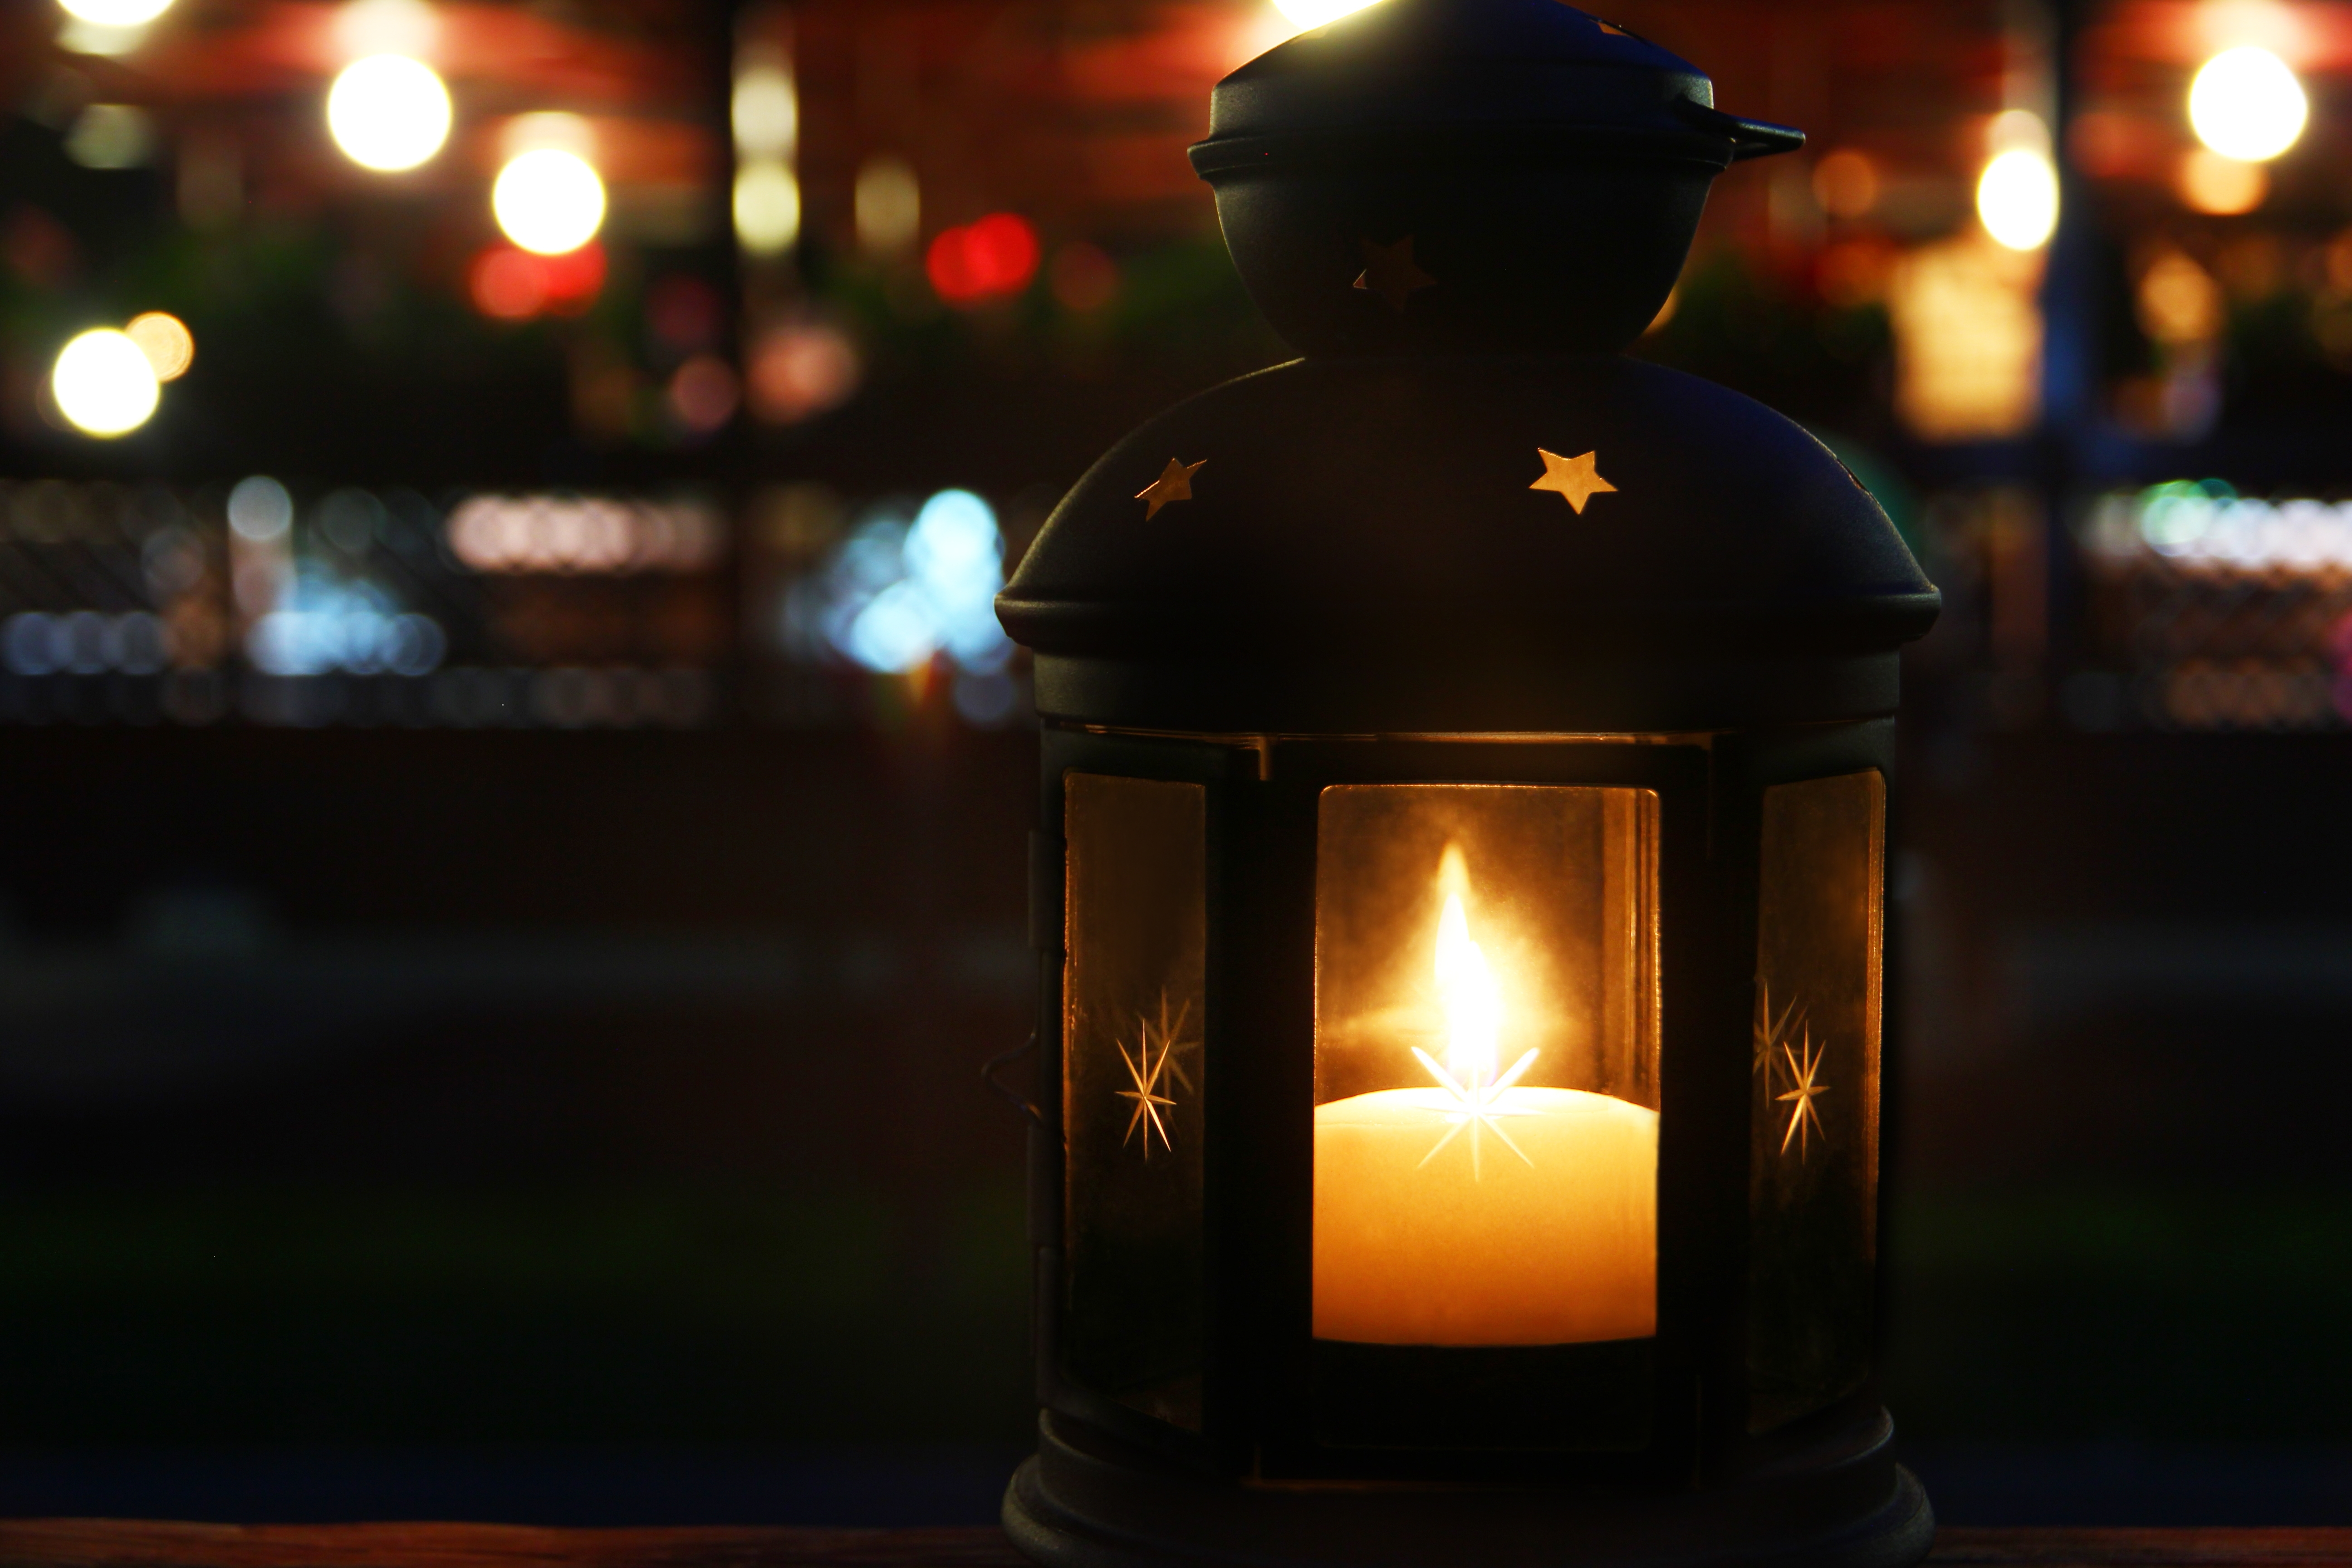 Outdoor Lanterns With Candles Within Well Liked How To Use Outdoor Decorative Candle Lanterns: 5 Steps (View 14 of 20)